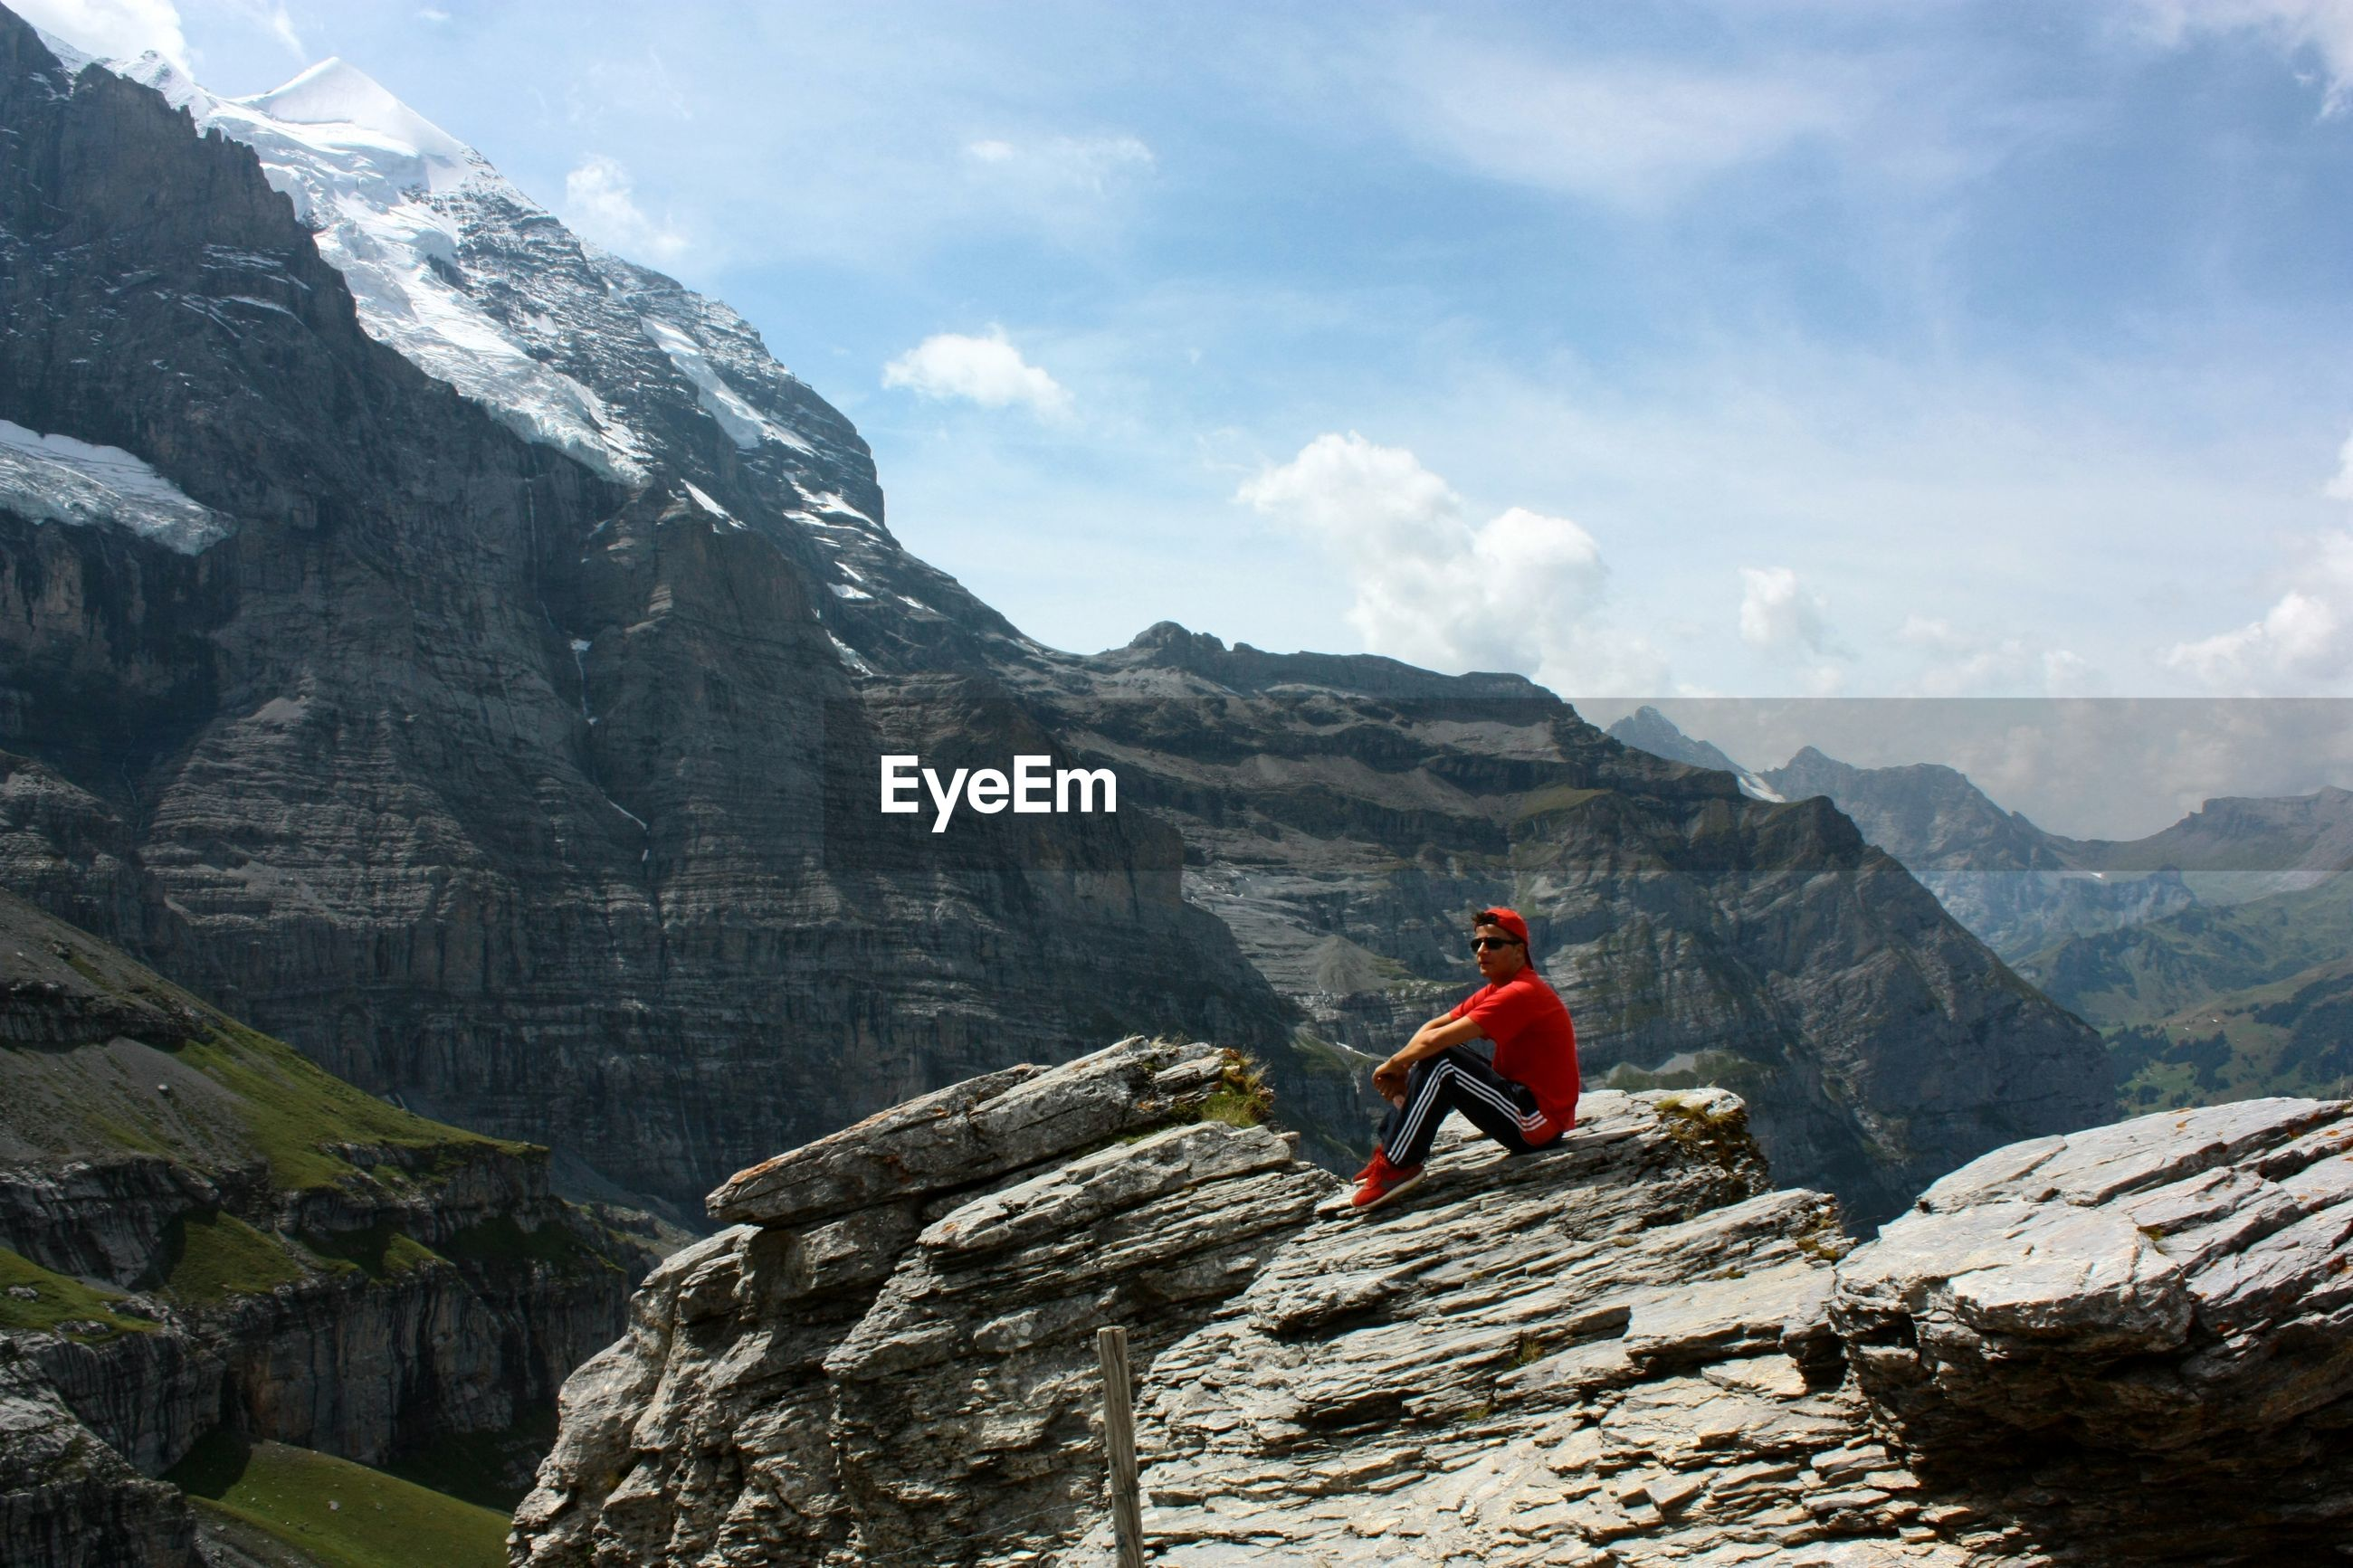 MAN ON ROCKS AGAINST MOUNTAINS